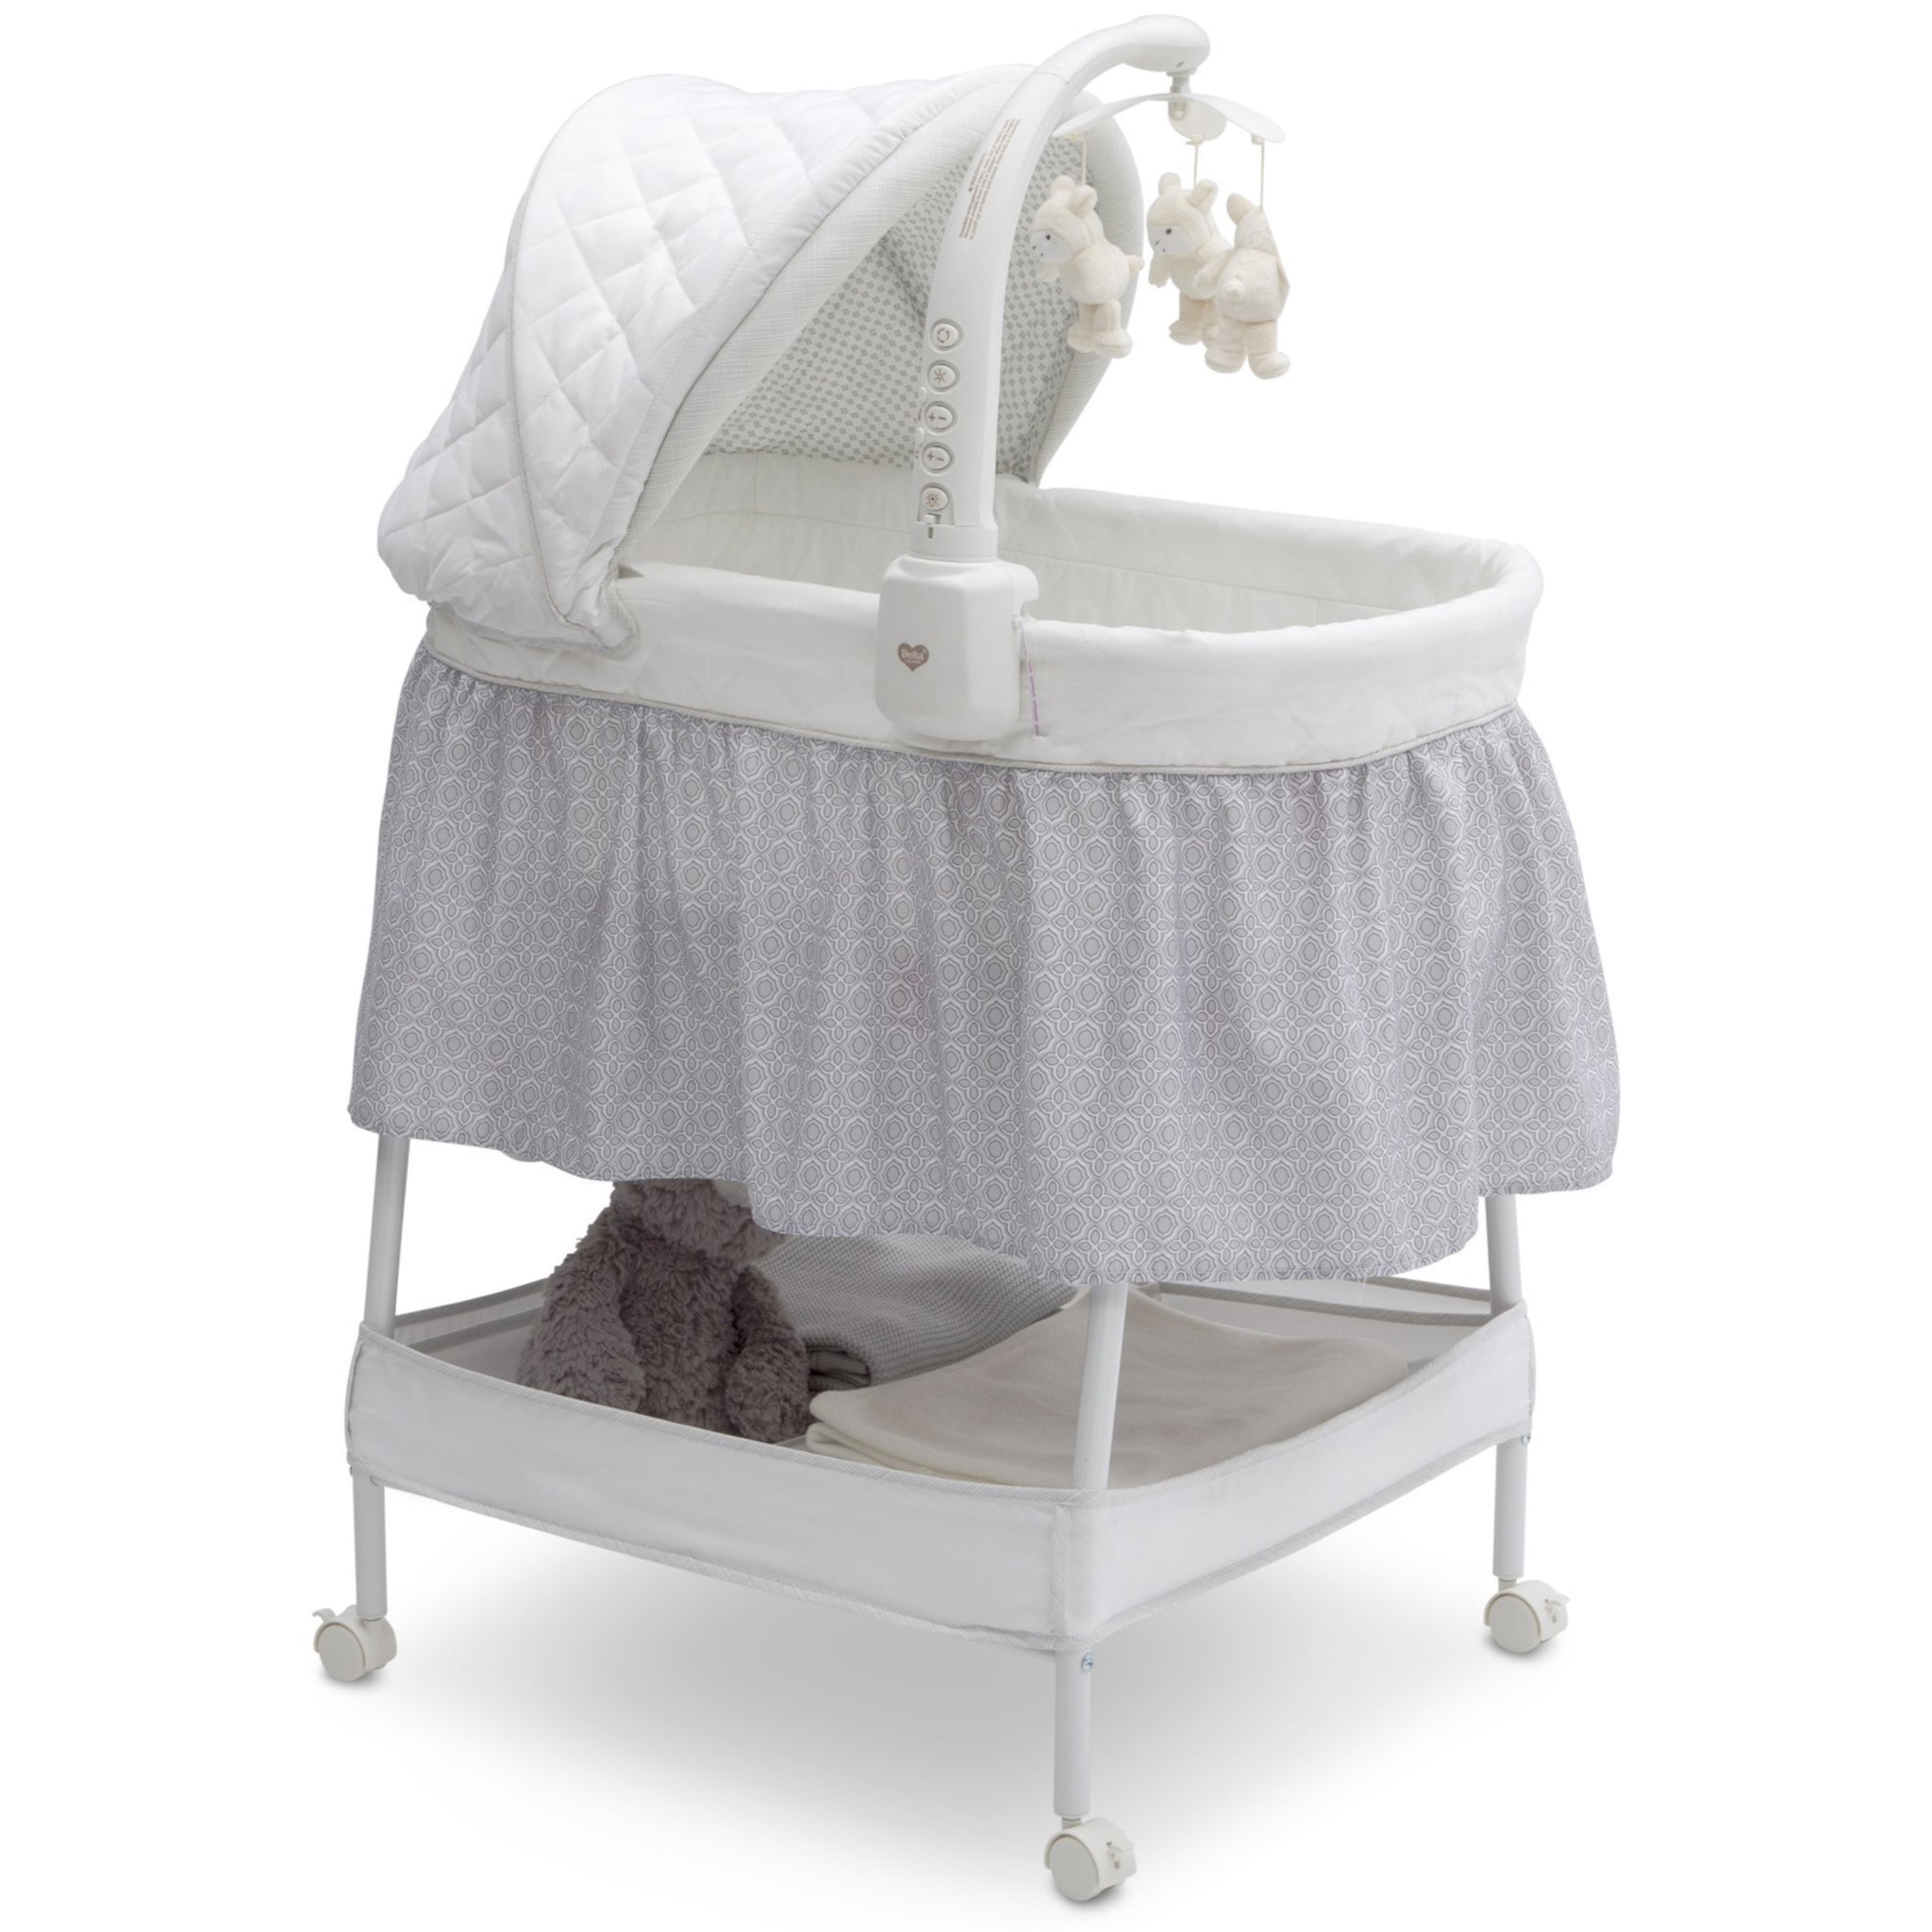 Deluxe Gliding Bassinet